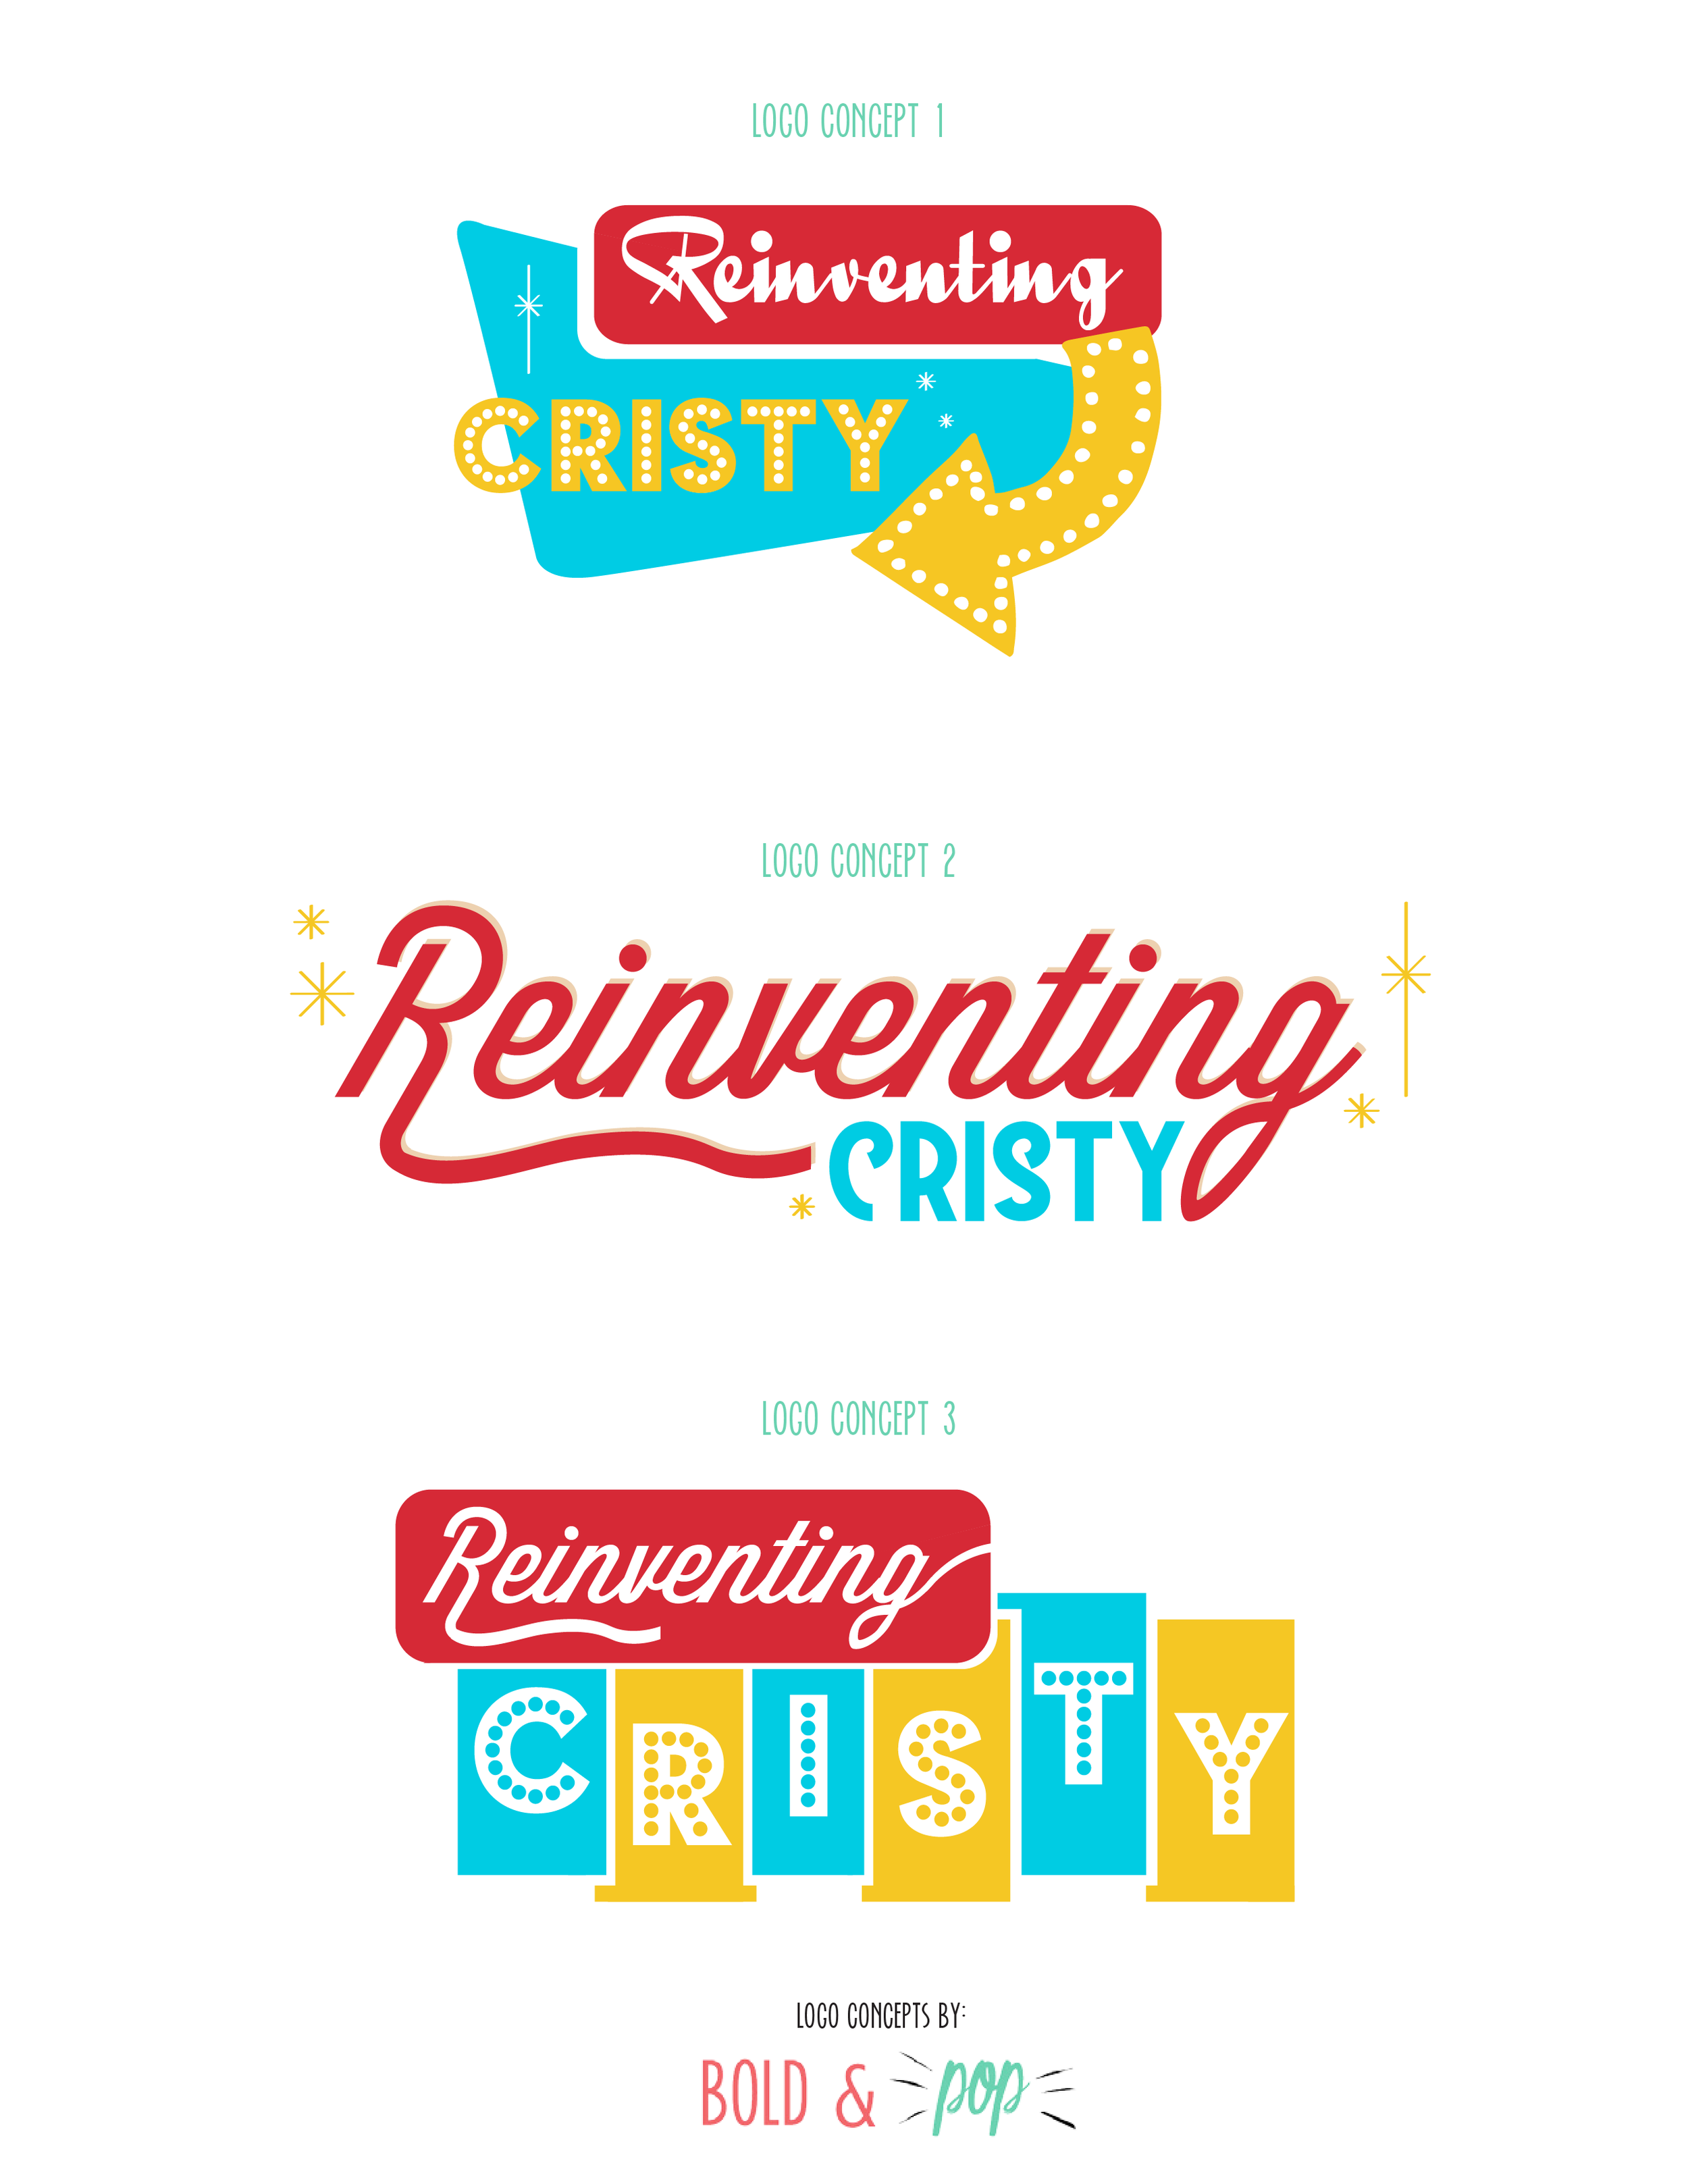 Reinventing Cristy Branding & Squarespace Blog Website Design